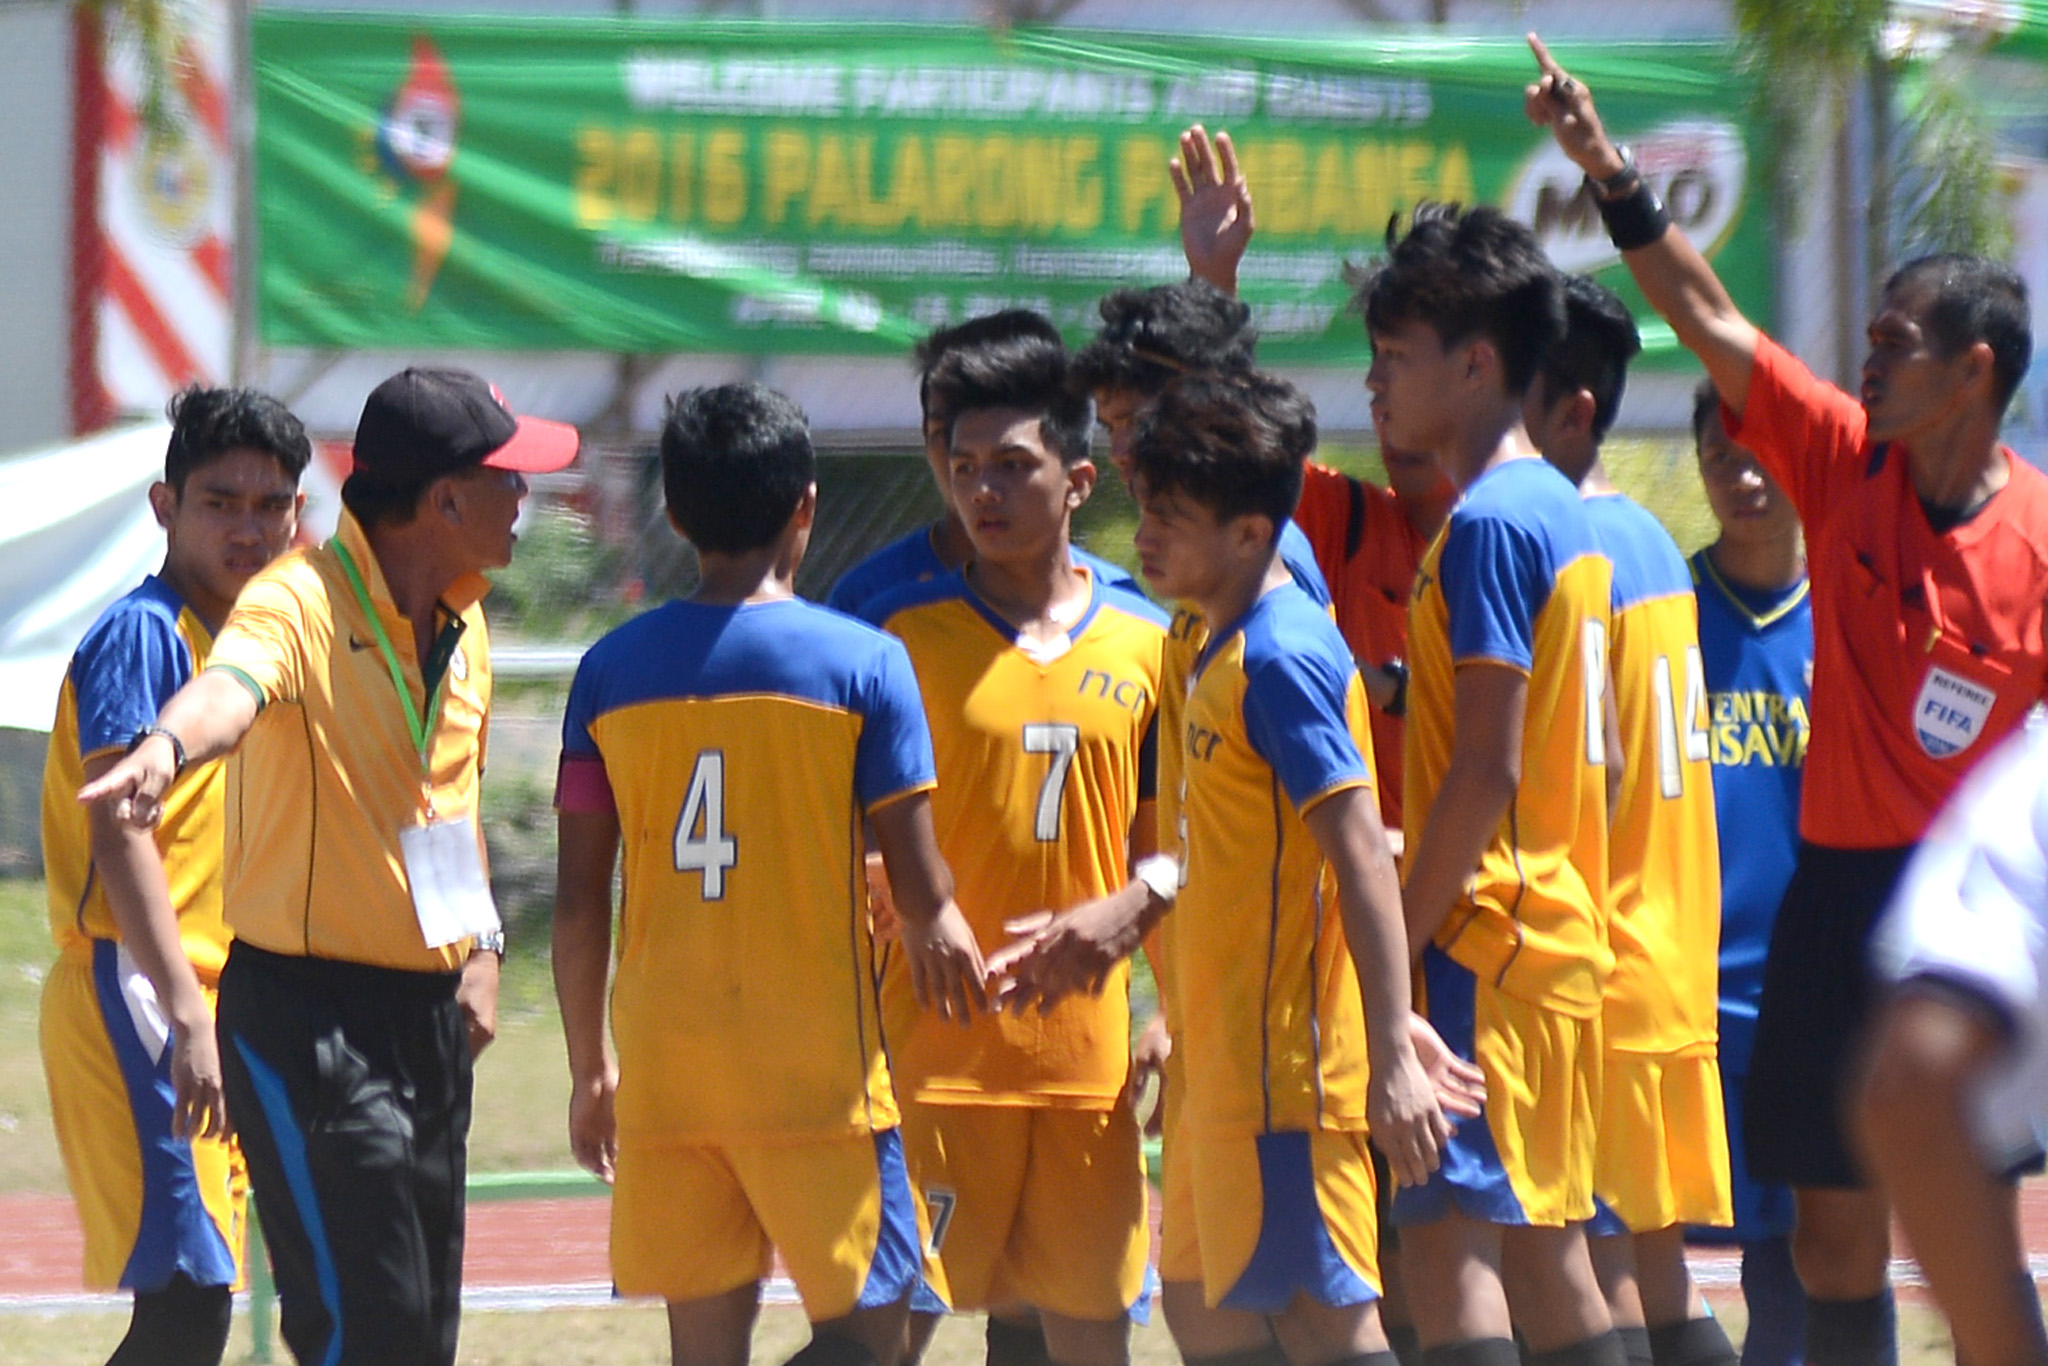 SCUFFLE. The NCR and Central Visayas football final is halted by several scuffles and commotions. Photo by Roy Secretario/Rappler